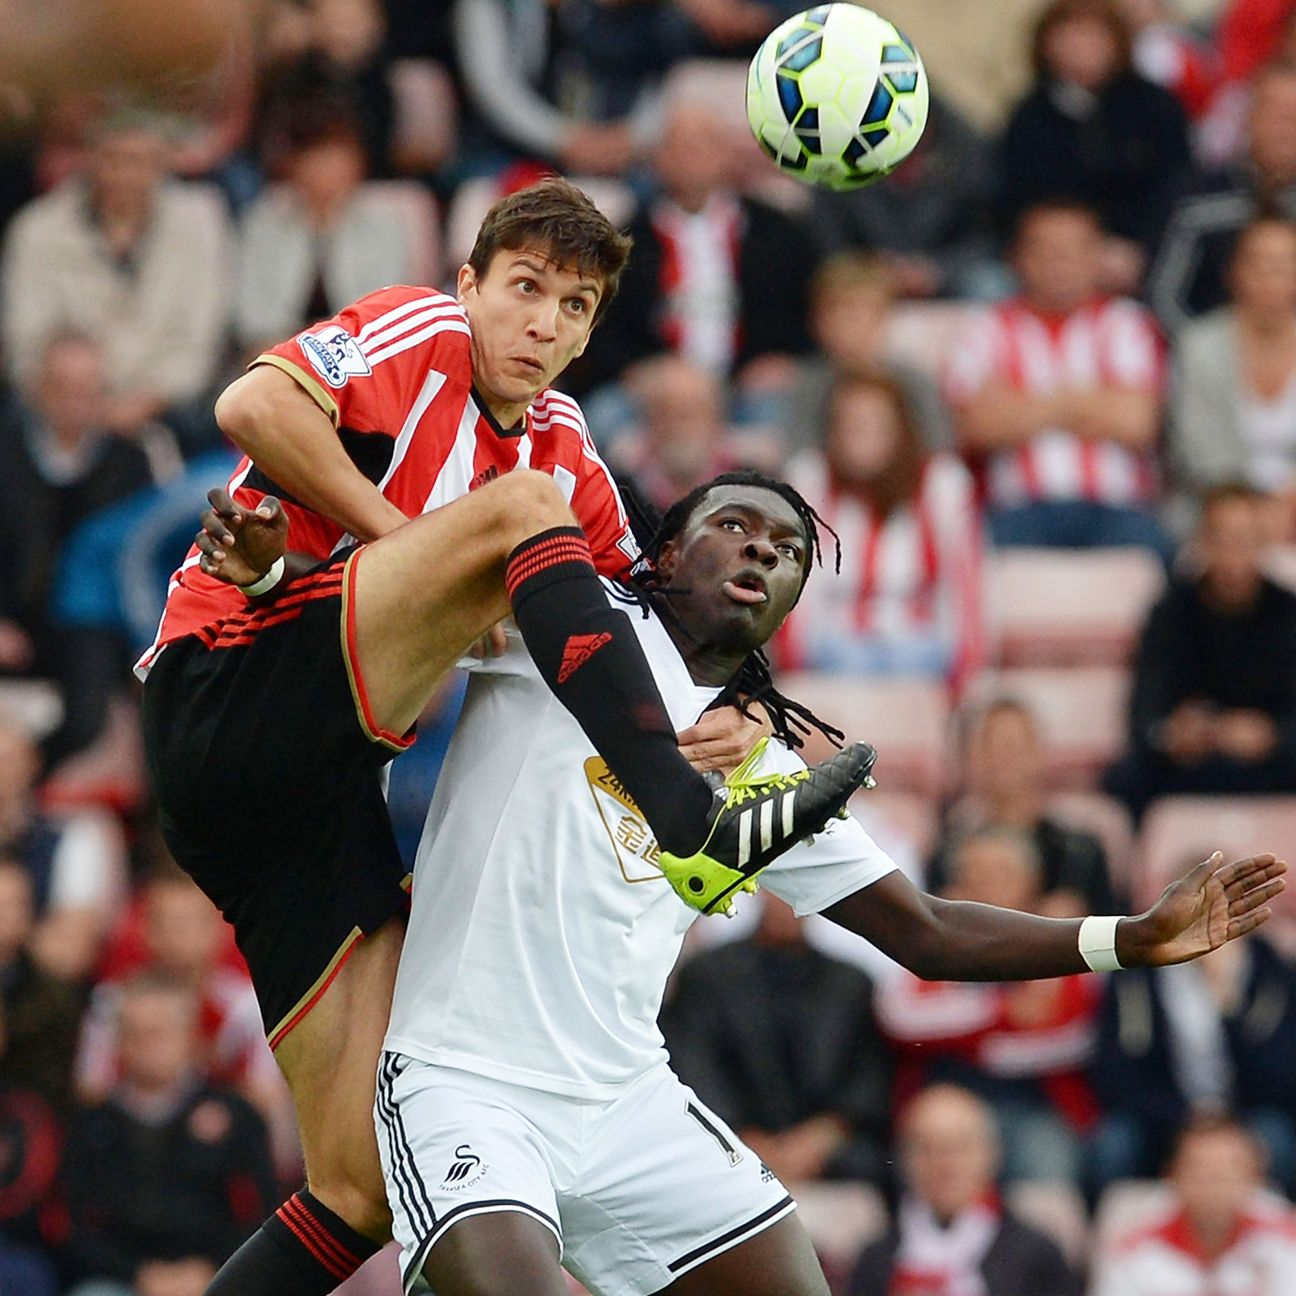 Swansea's Bafetimbi Gomis, right, had difficulty dealing with Sunderland's physical defence in Saturday 0-0 draw.